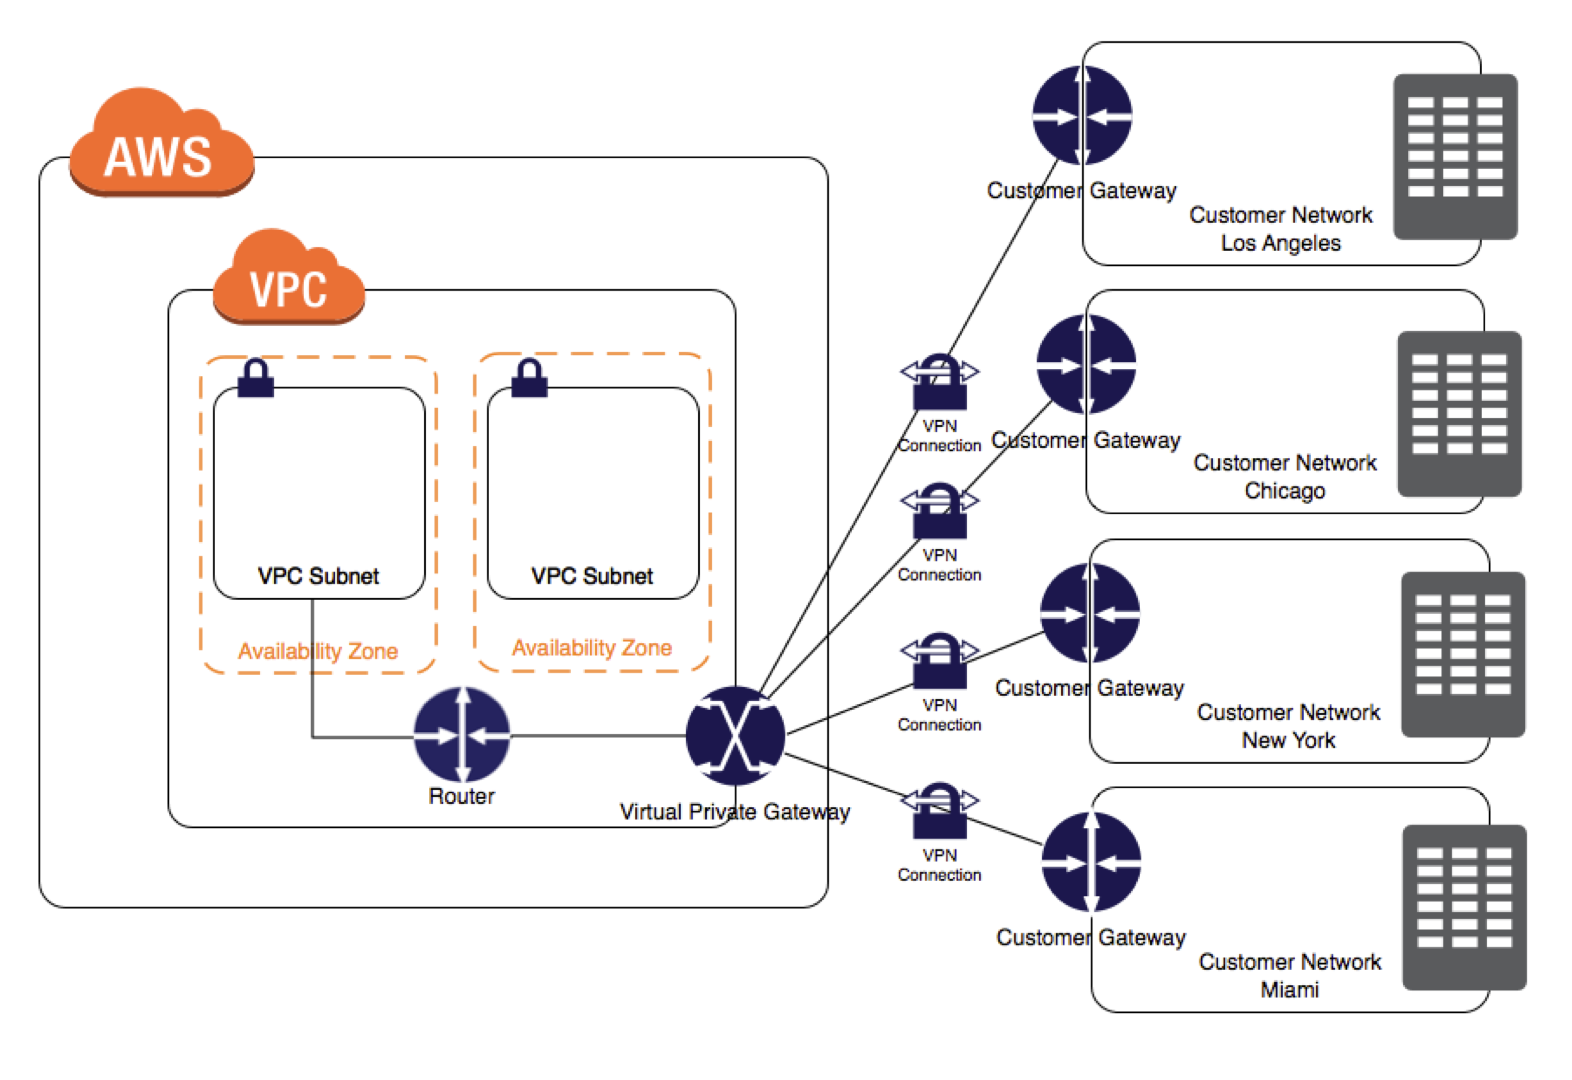 AWS VPC VPN - CloudHub Connections - Certification